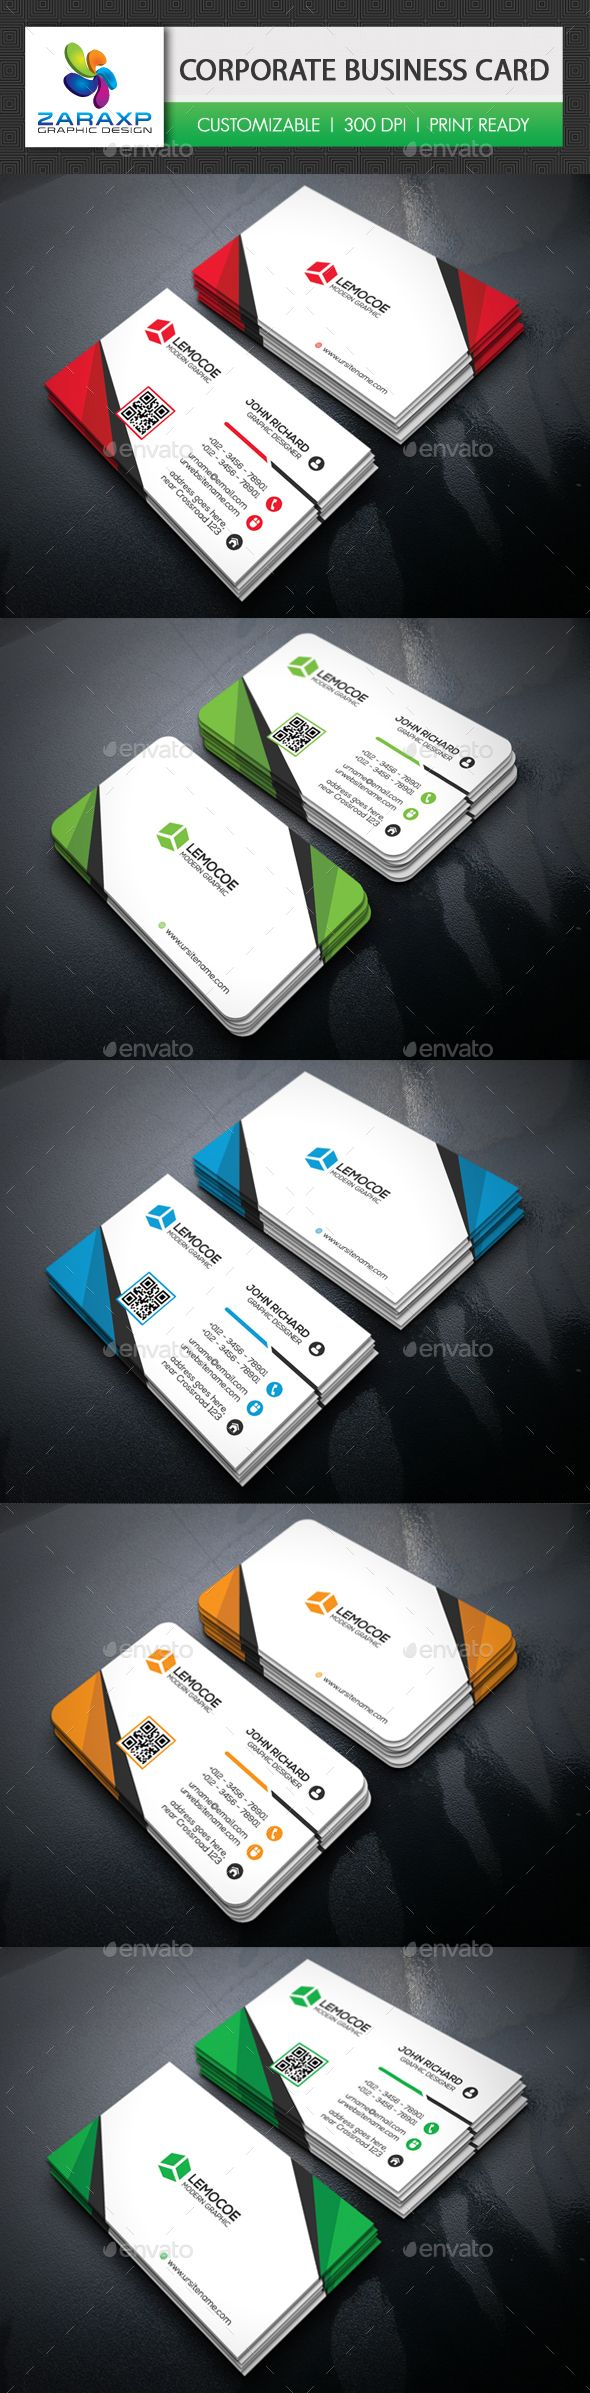 Corporate Business Card Template PSD #design Download: http://graphicriver.net/item/corporate-business-card/14211343?ref=ksioks